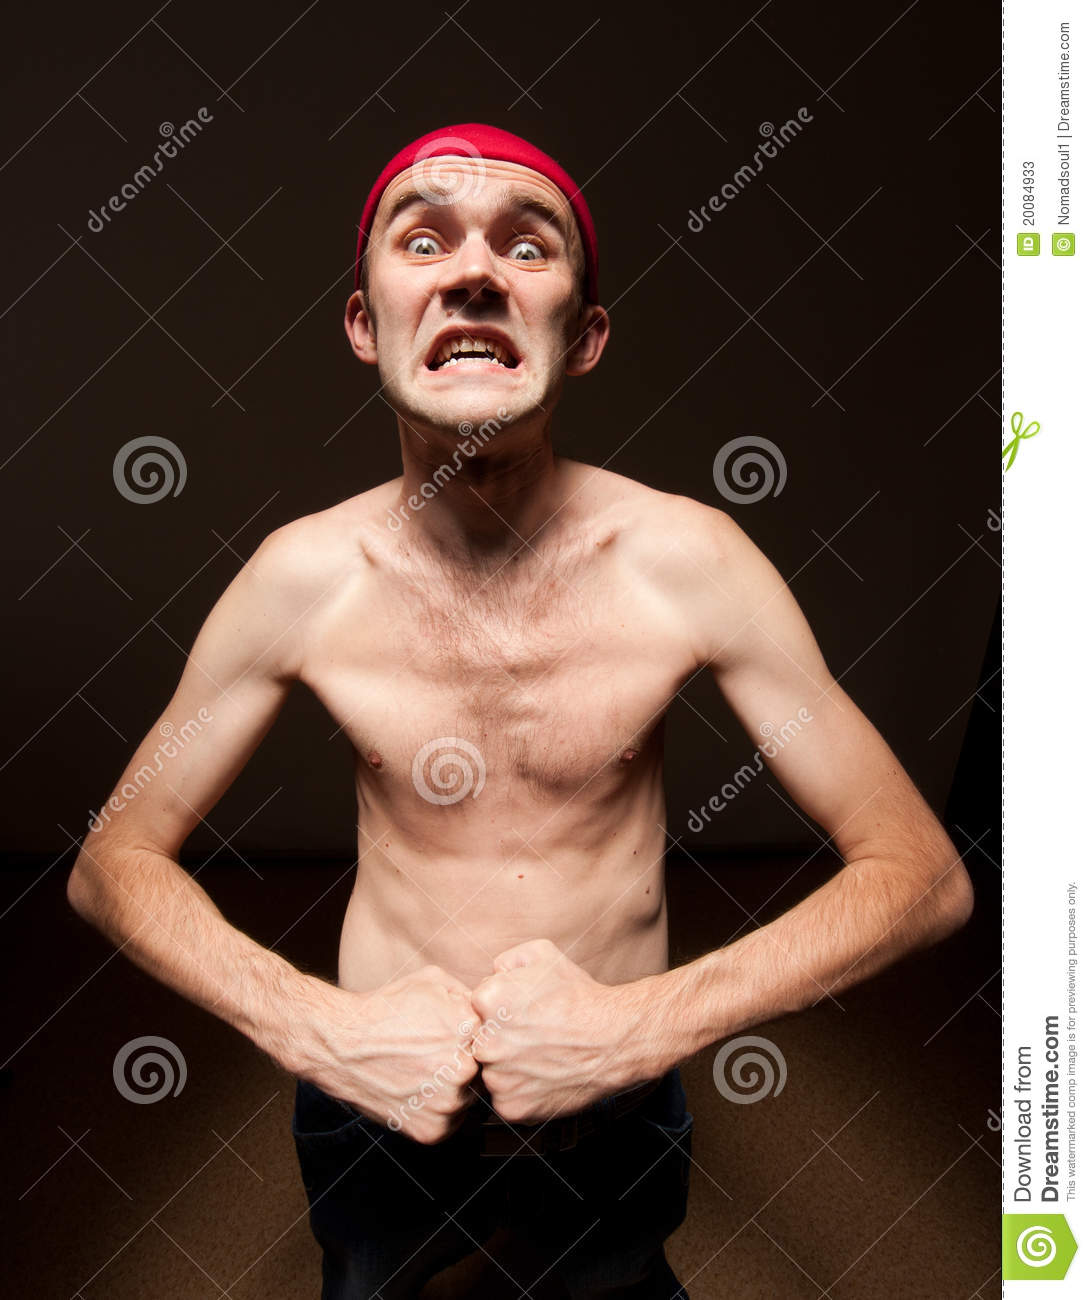 Funny Nerd Showing His Biceps Stock Photos - Image: 20084933